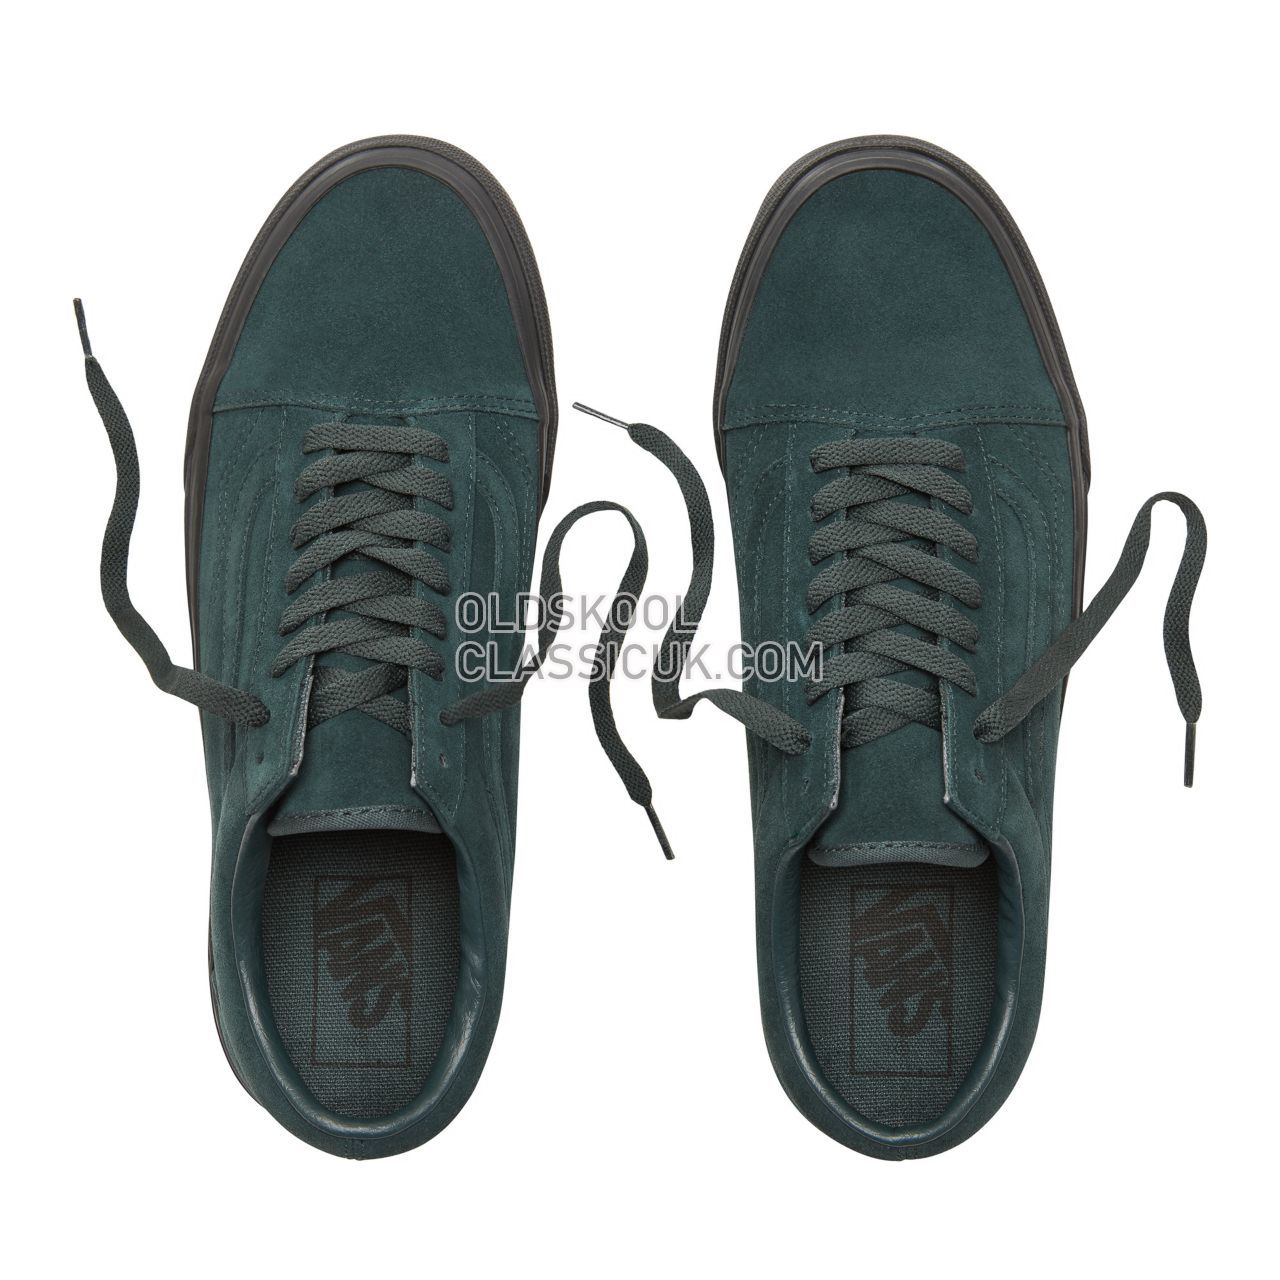 Vans Suede Black Outsole Old Skool Sneakers Mens Womens Unisex (Black Outsole) Darkest Spruce/Black VA38G1U8U Shoes